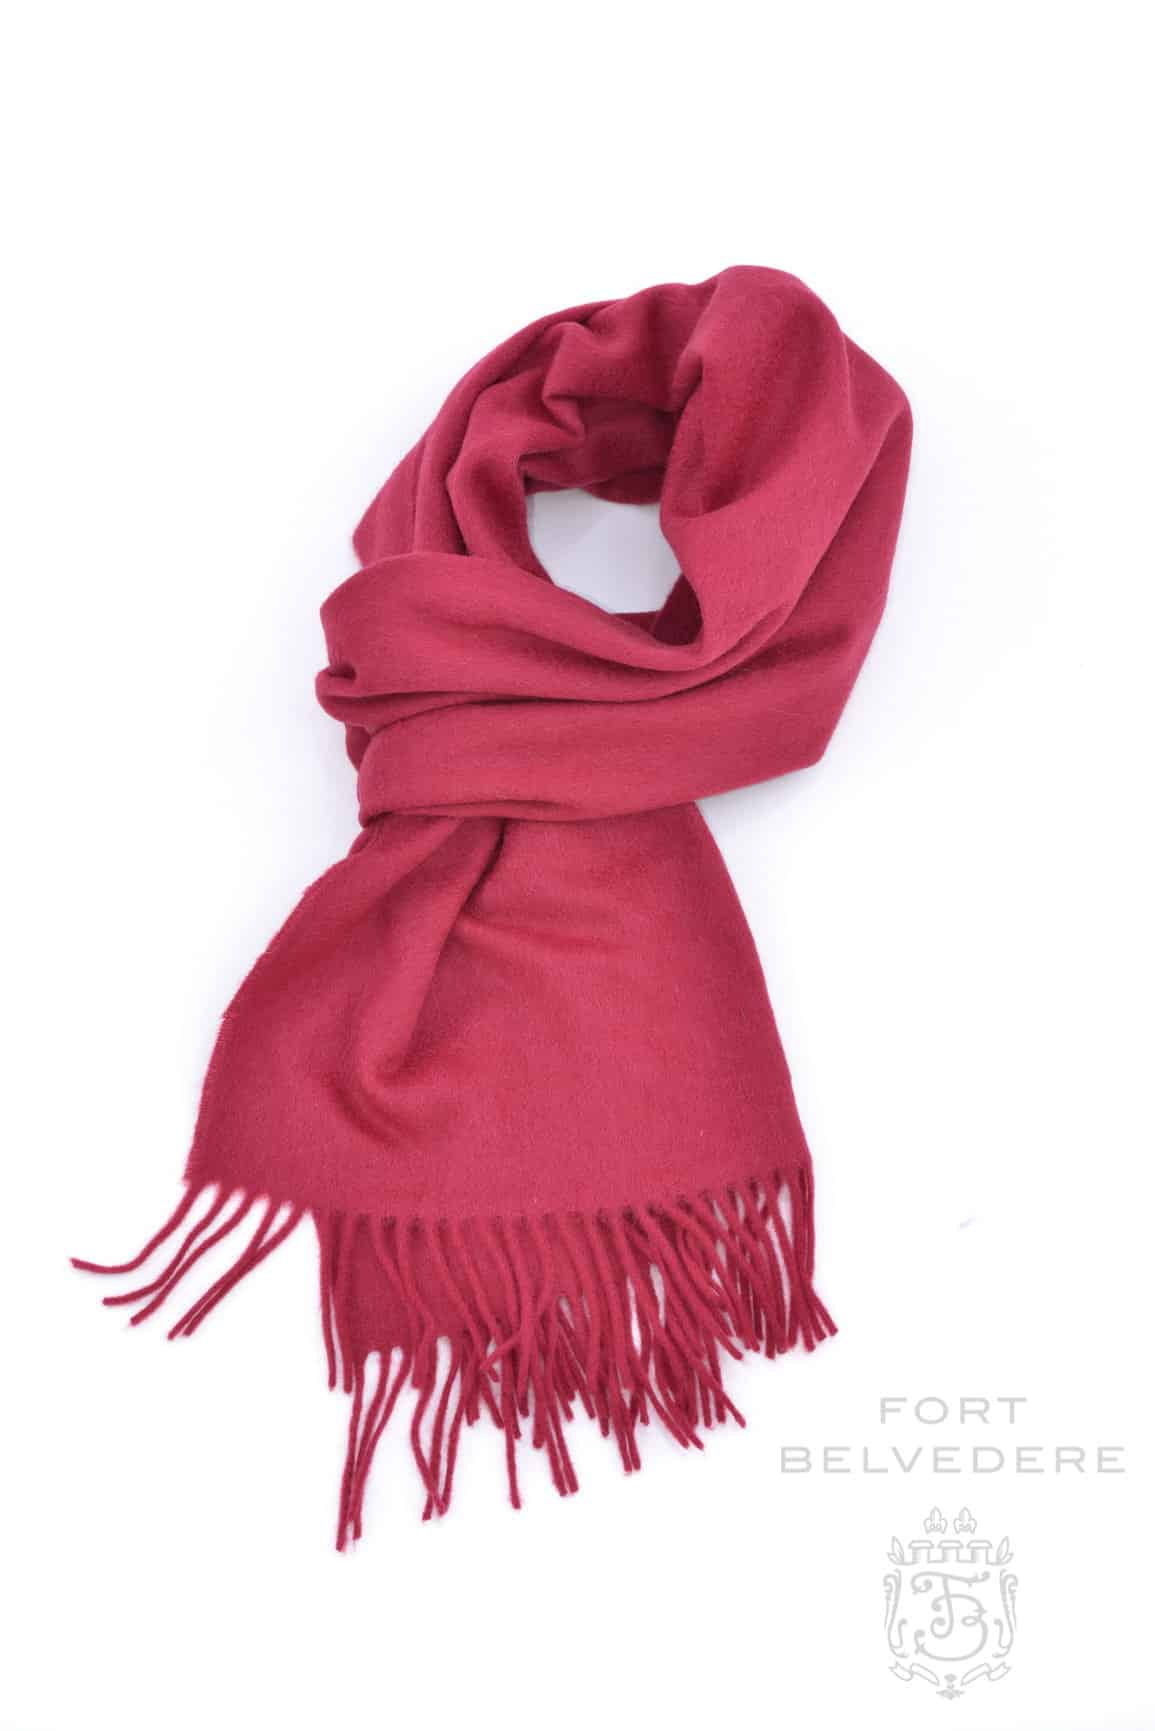 Solid Red Cashmere Scarf 180 x 30 cm - Fort Belvedere